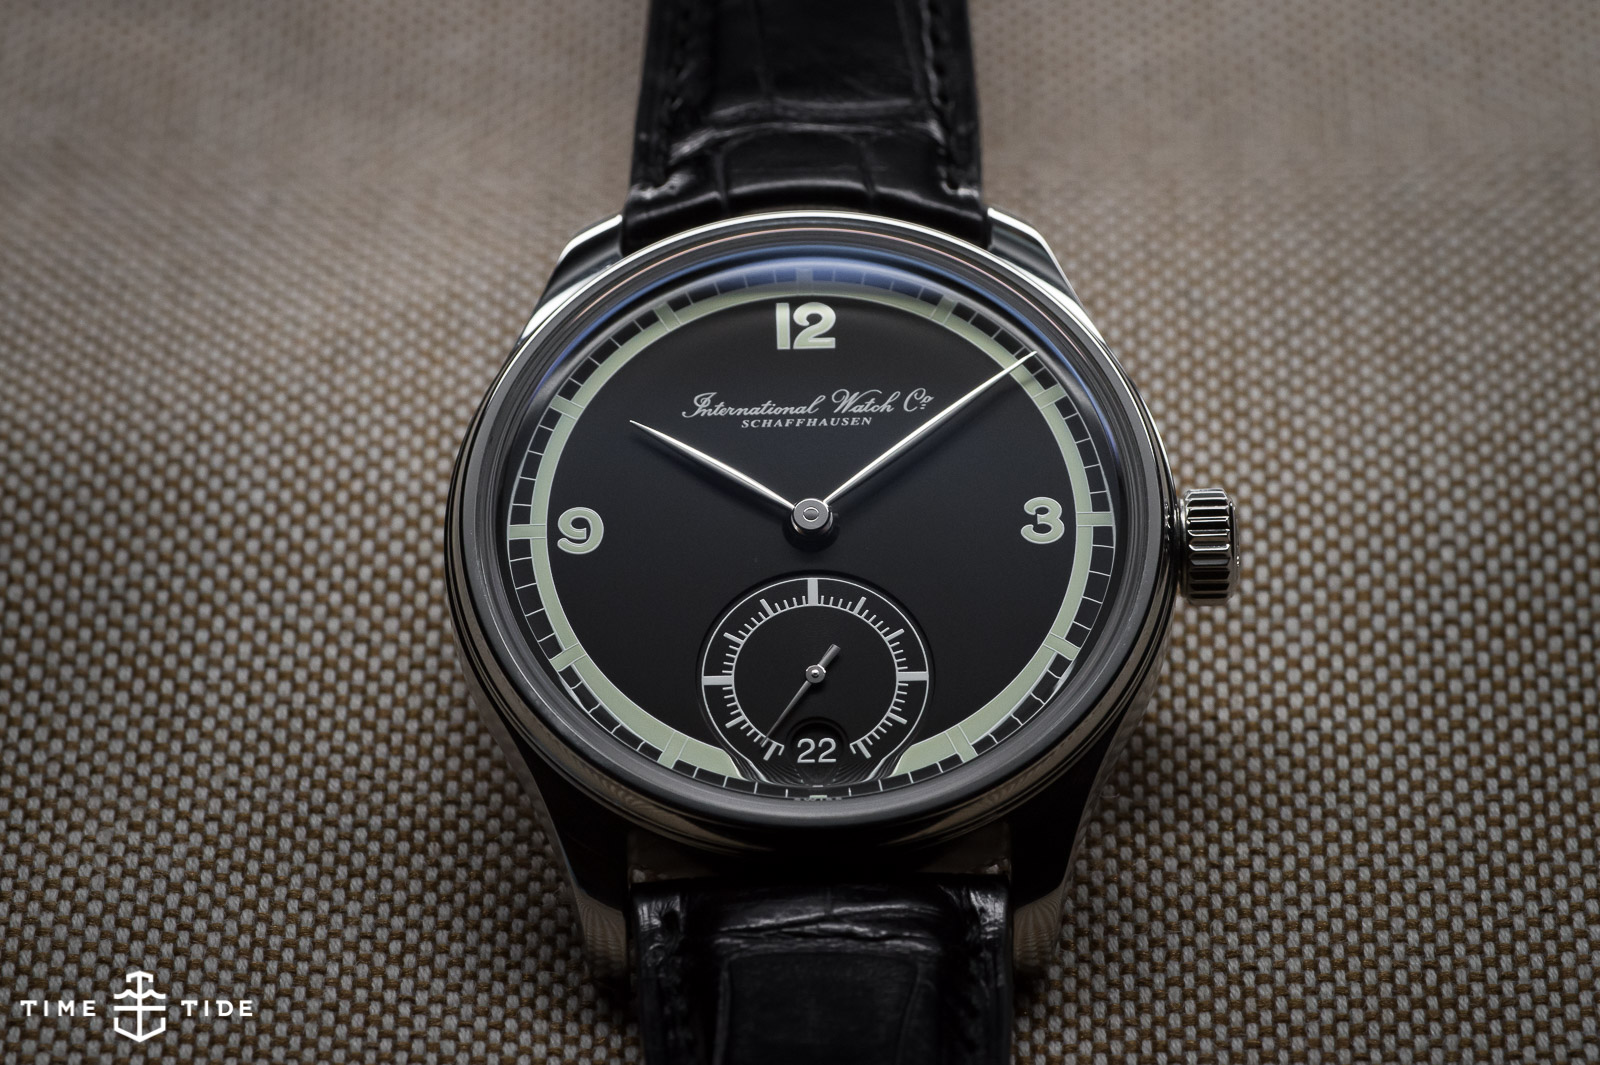 IWC Portugieser Hand Wound Eight Days - wristwatches are more relevant